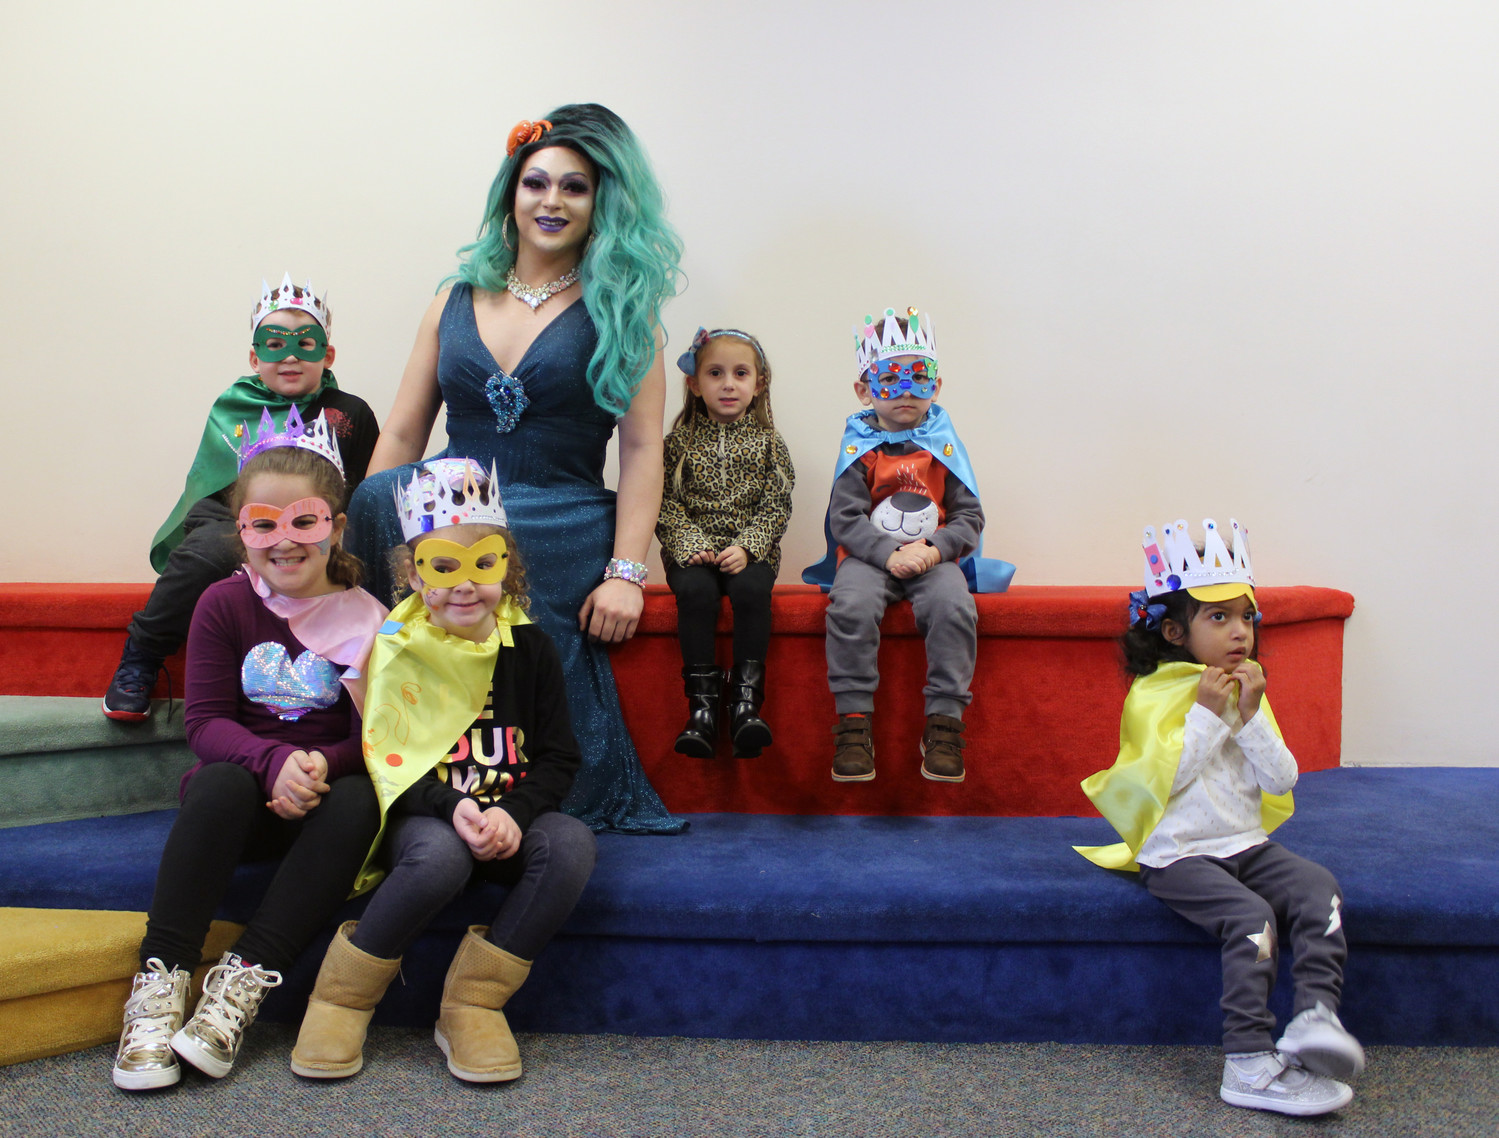 After reading several books about tolerance and inclusivity, Noche complimented children as they created their own crowns and superhero capes and masks. From left were Aiden O'Callaghan, 5, Angelina and Viviana Frisch, 6 and 4, Olivia Longo, 4, Xazar Karimou, 4, and Leilani Grant, 3, all of East Meadow.